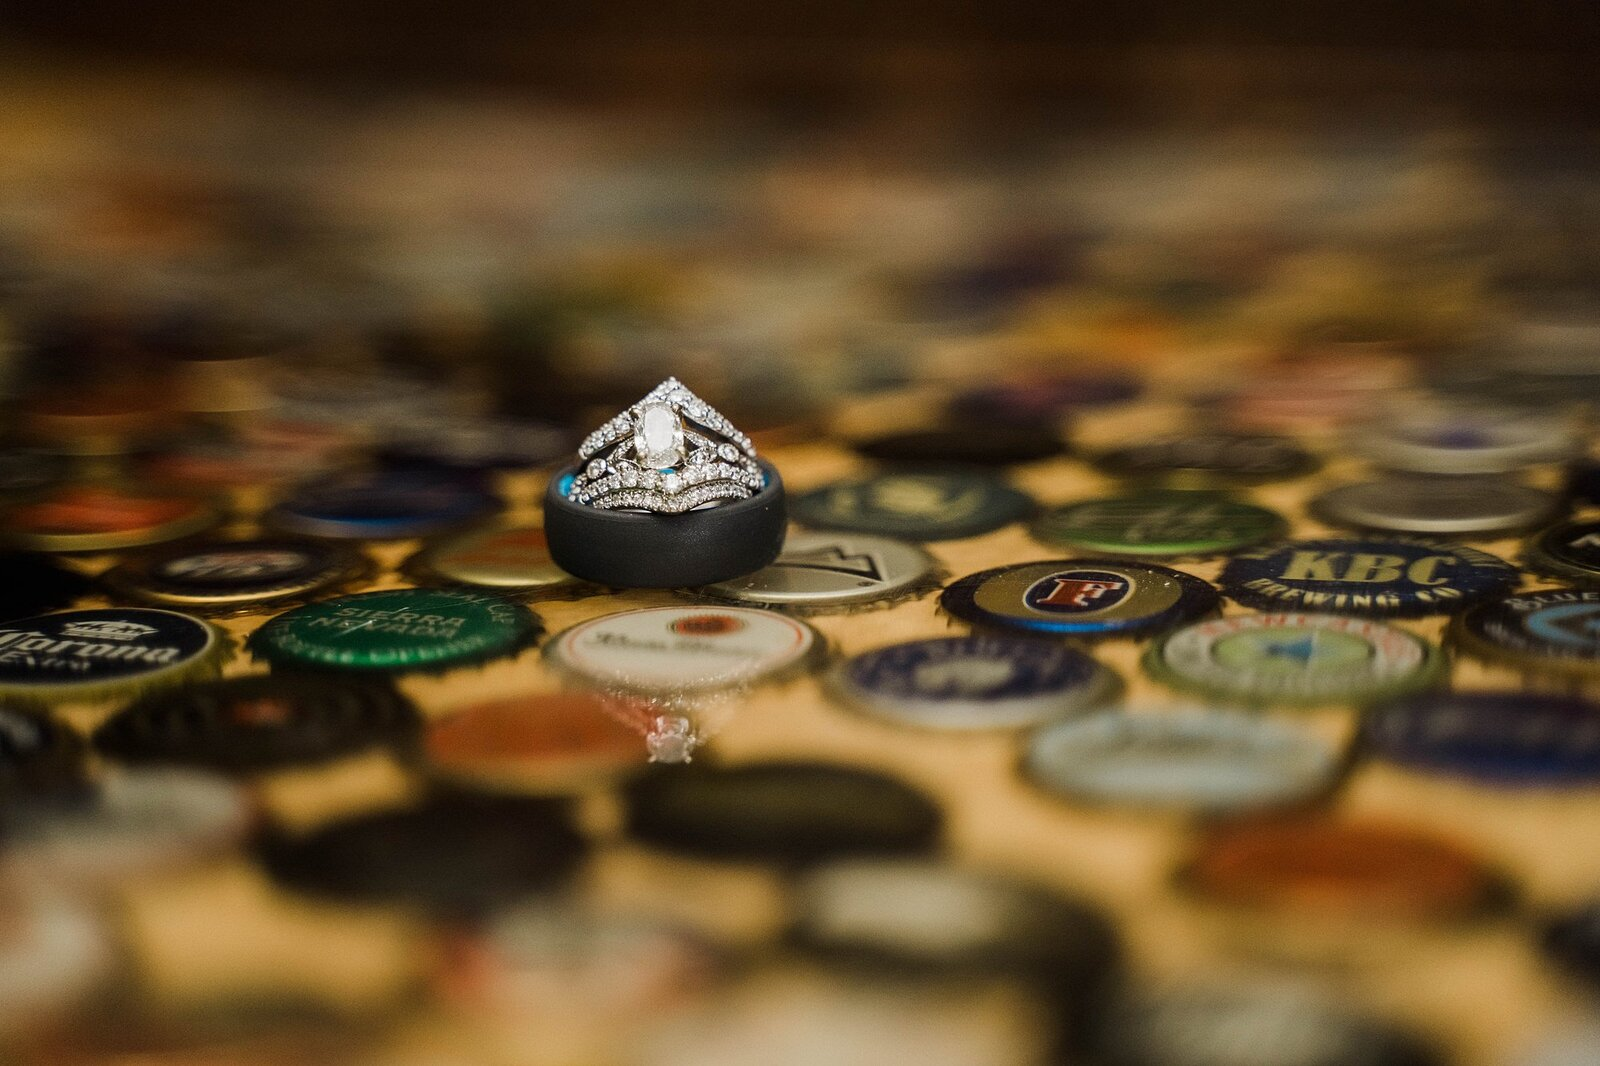 Wedding ring detail photo on beer caps